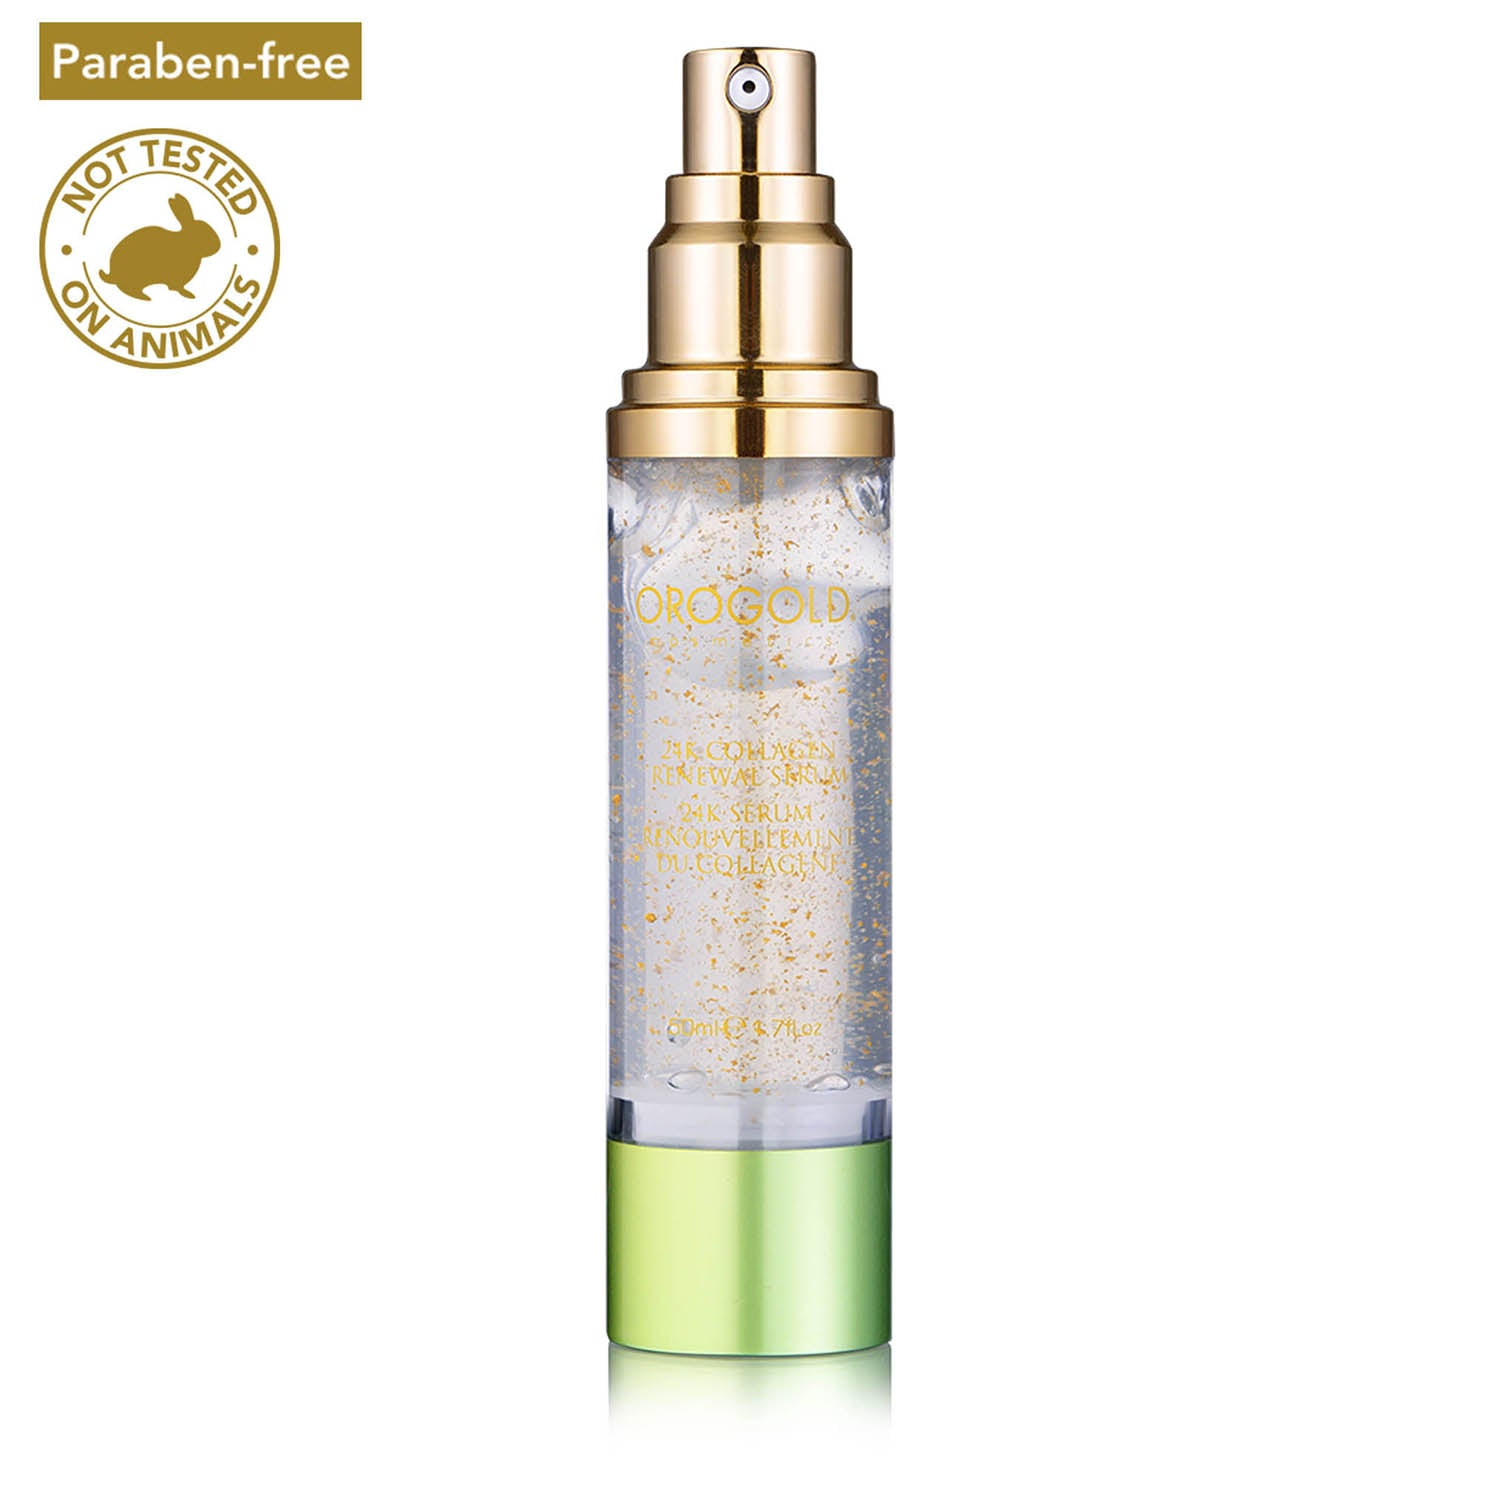 orogold face renewal serum